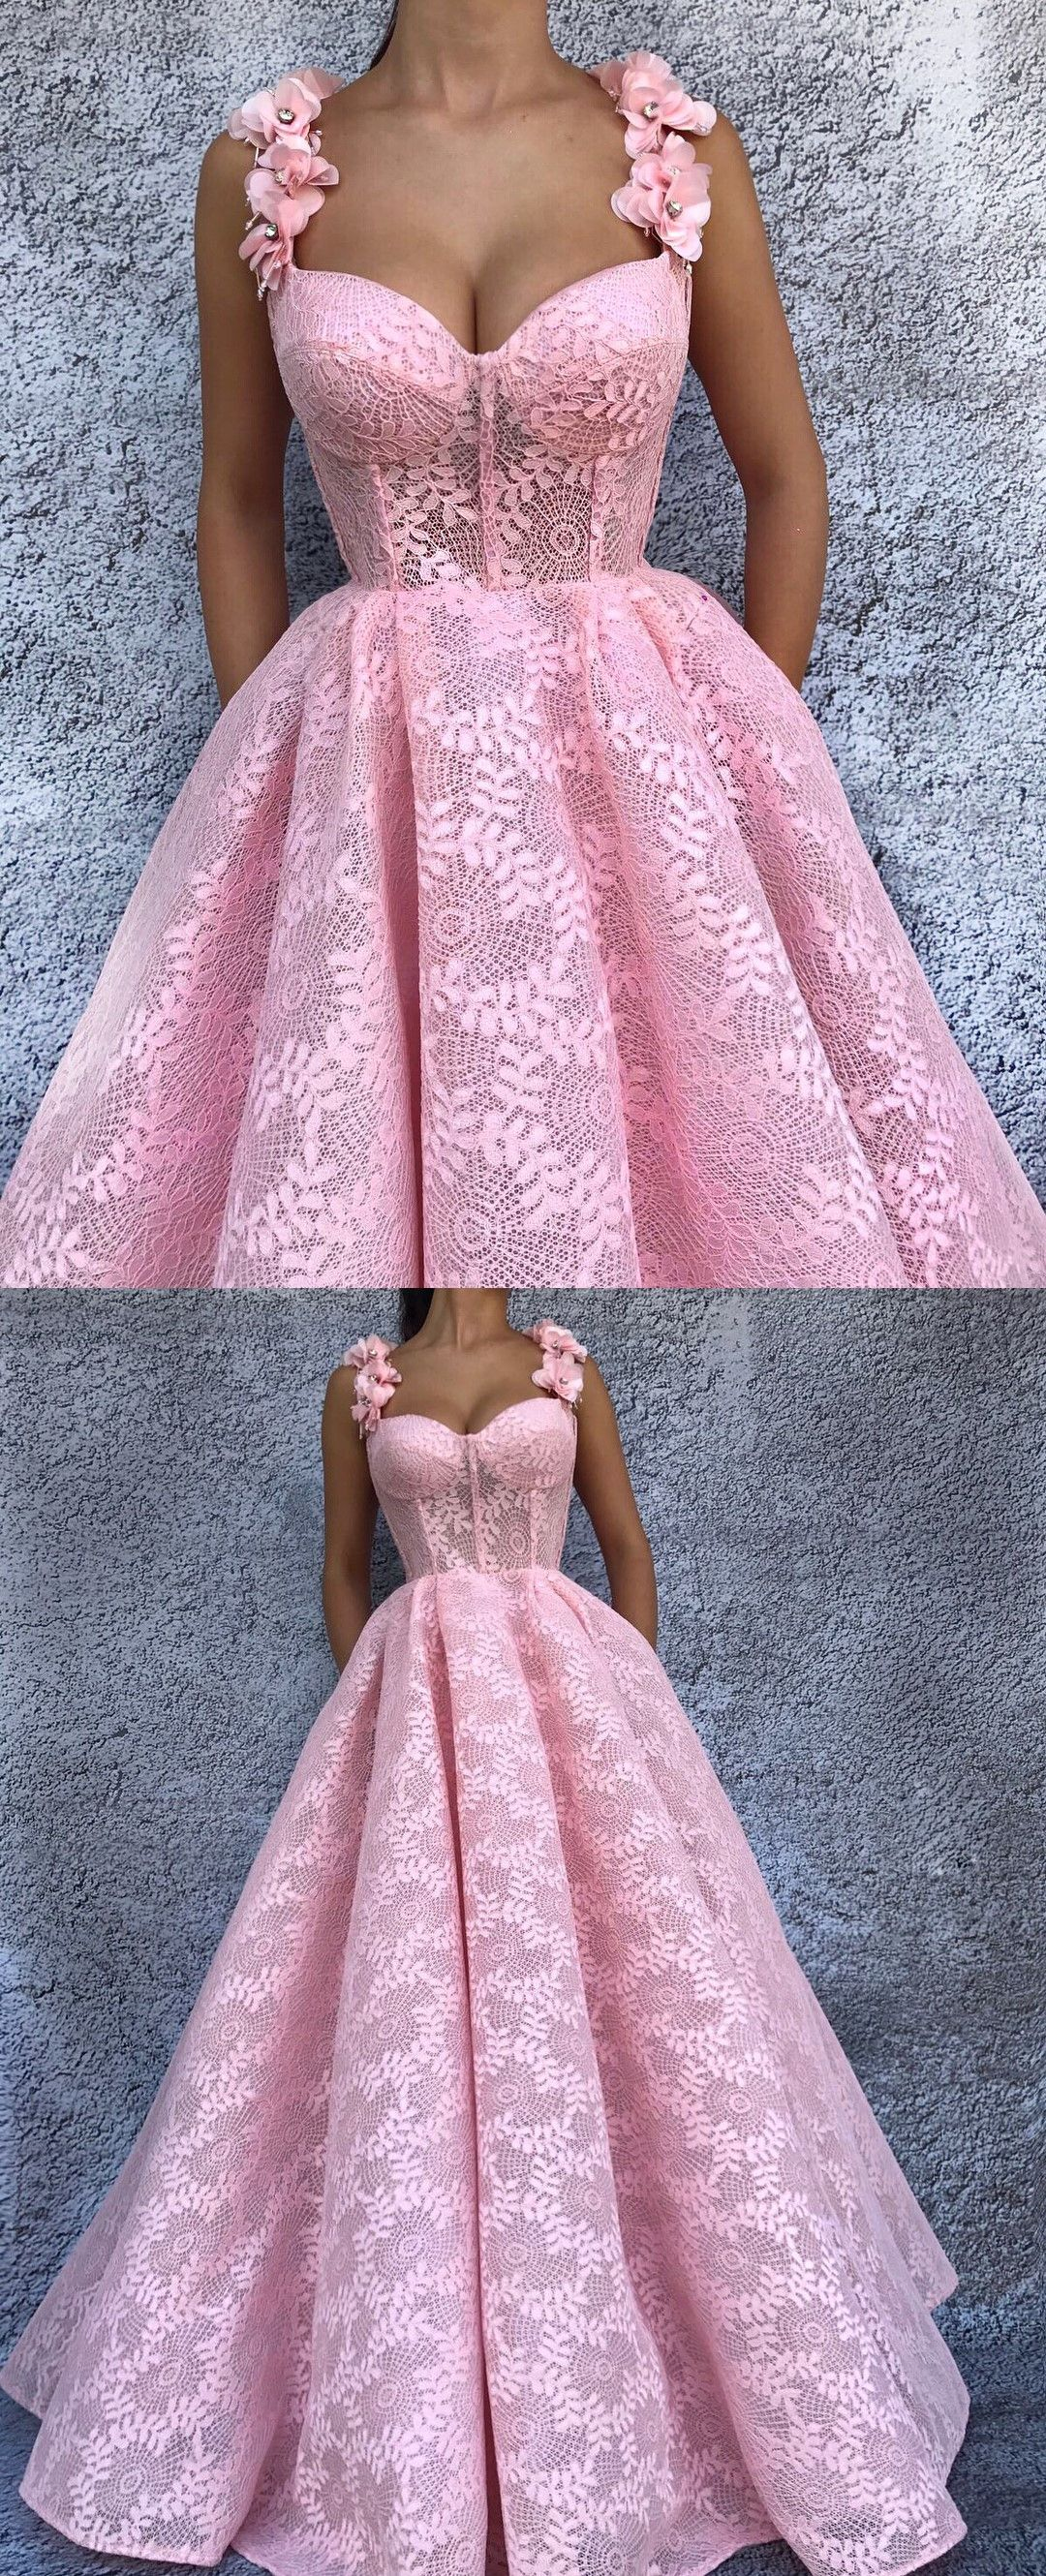 Ball gown spaghetti straps pink lace prom dress with flowers in